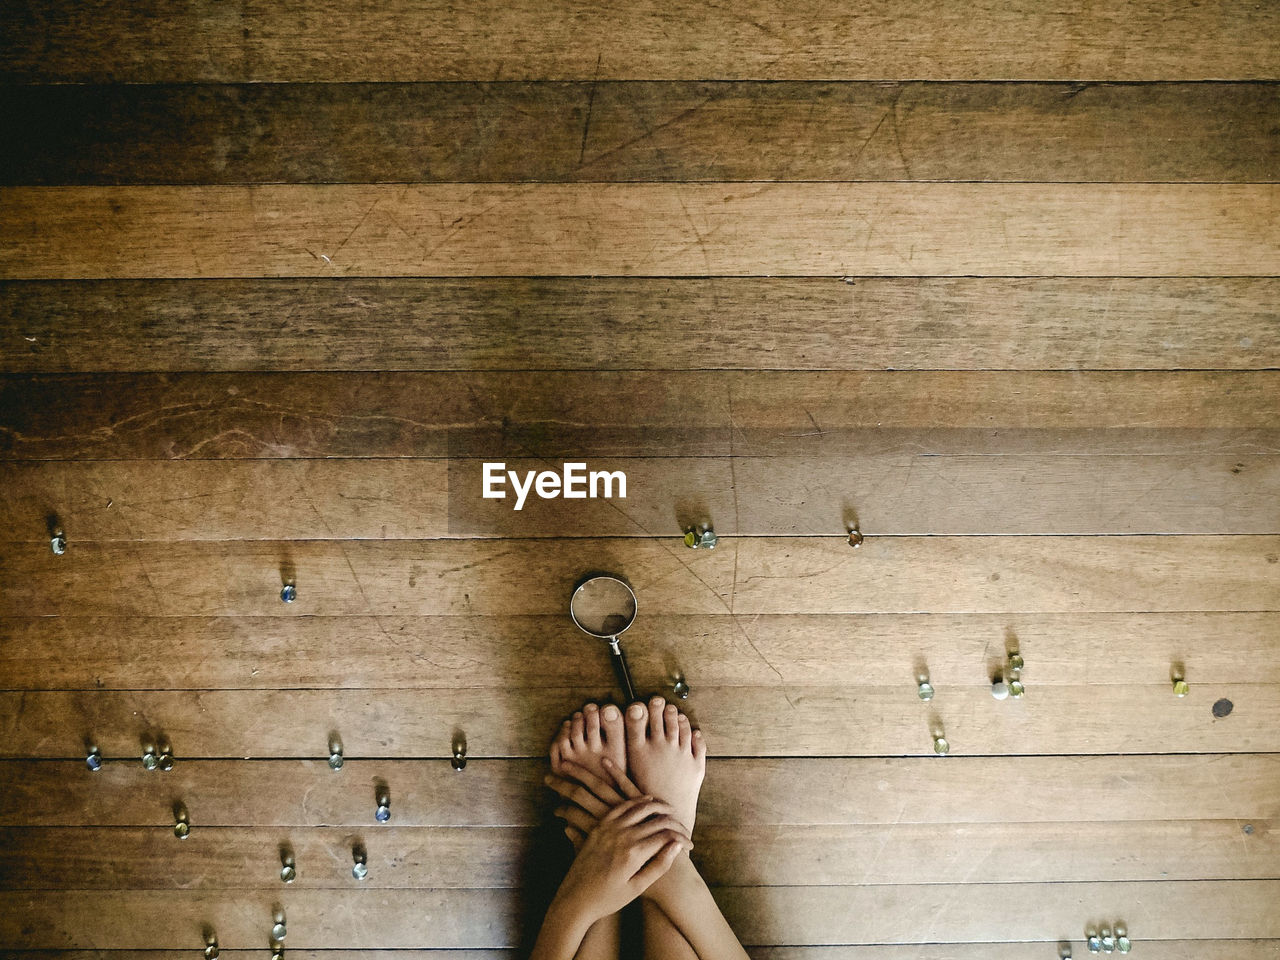 Cropped image of person crouching with marbles and magnifying glass on hardwood floor